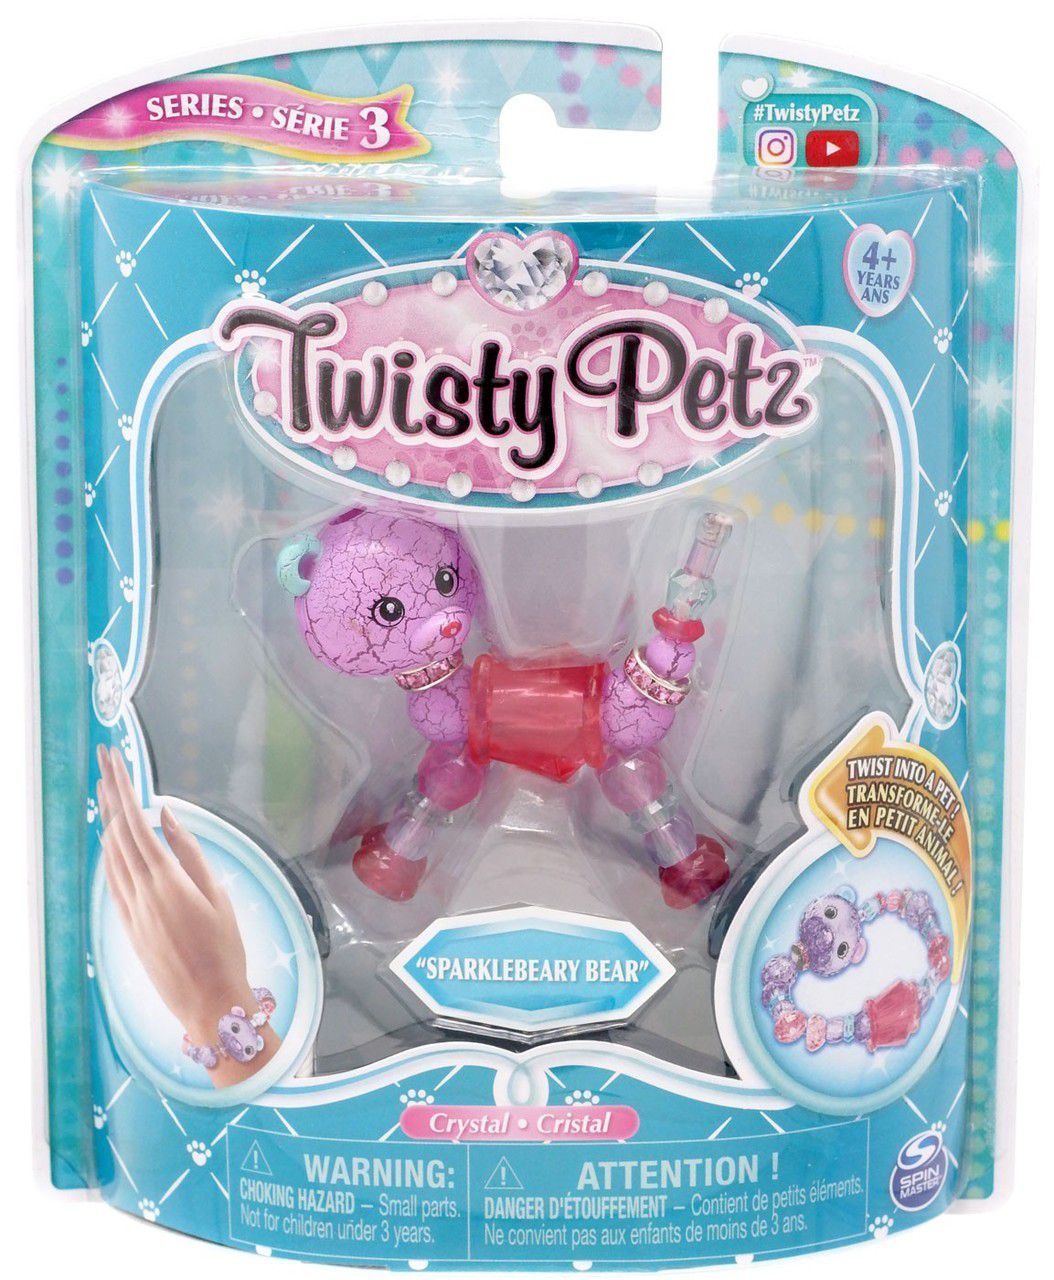 Twisty Petz Pulseira Single - Sparklebeary Bear Urso - Sunny